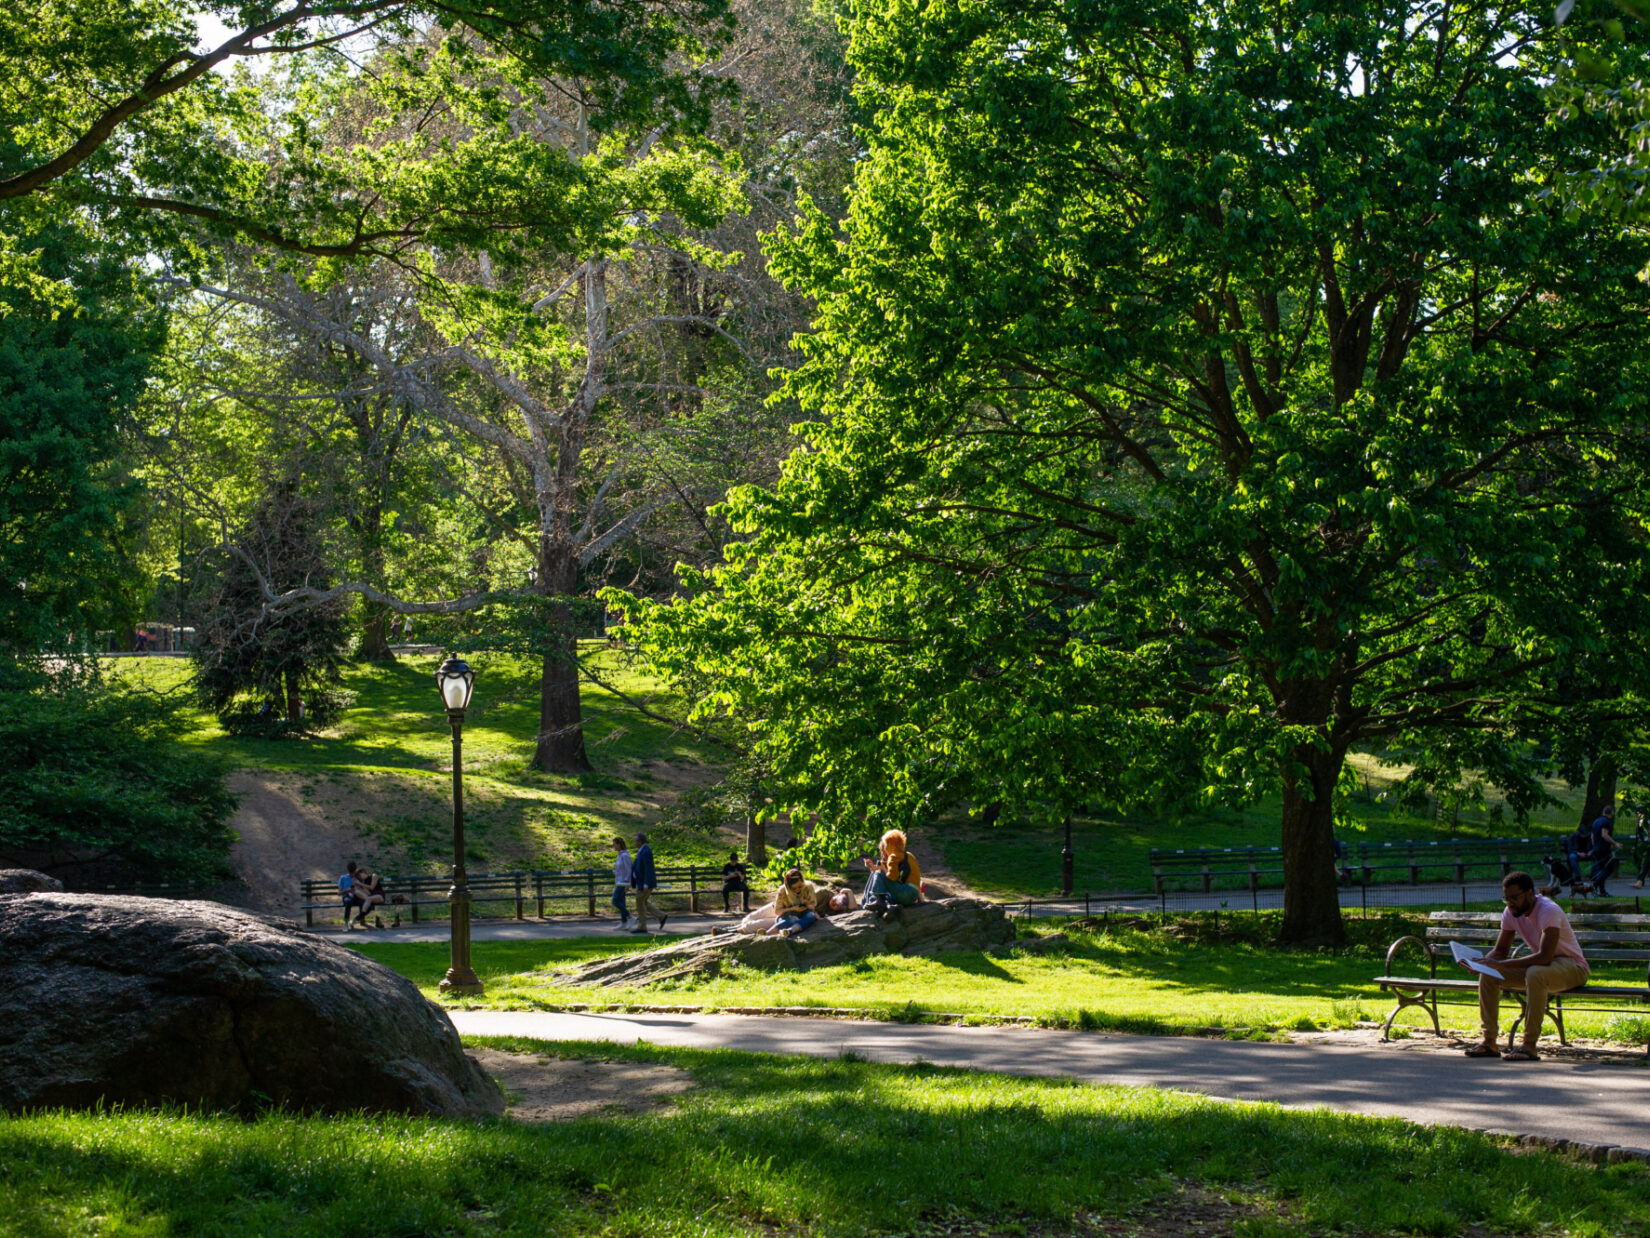 Parkgoers perch on outcroppings and benches on the path along the Great Lawn